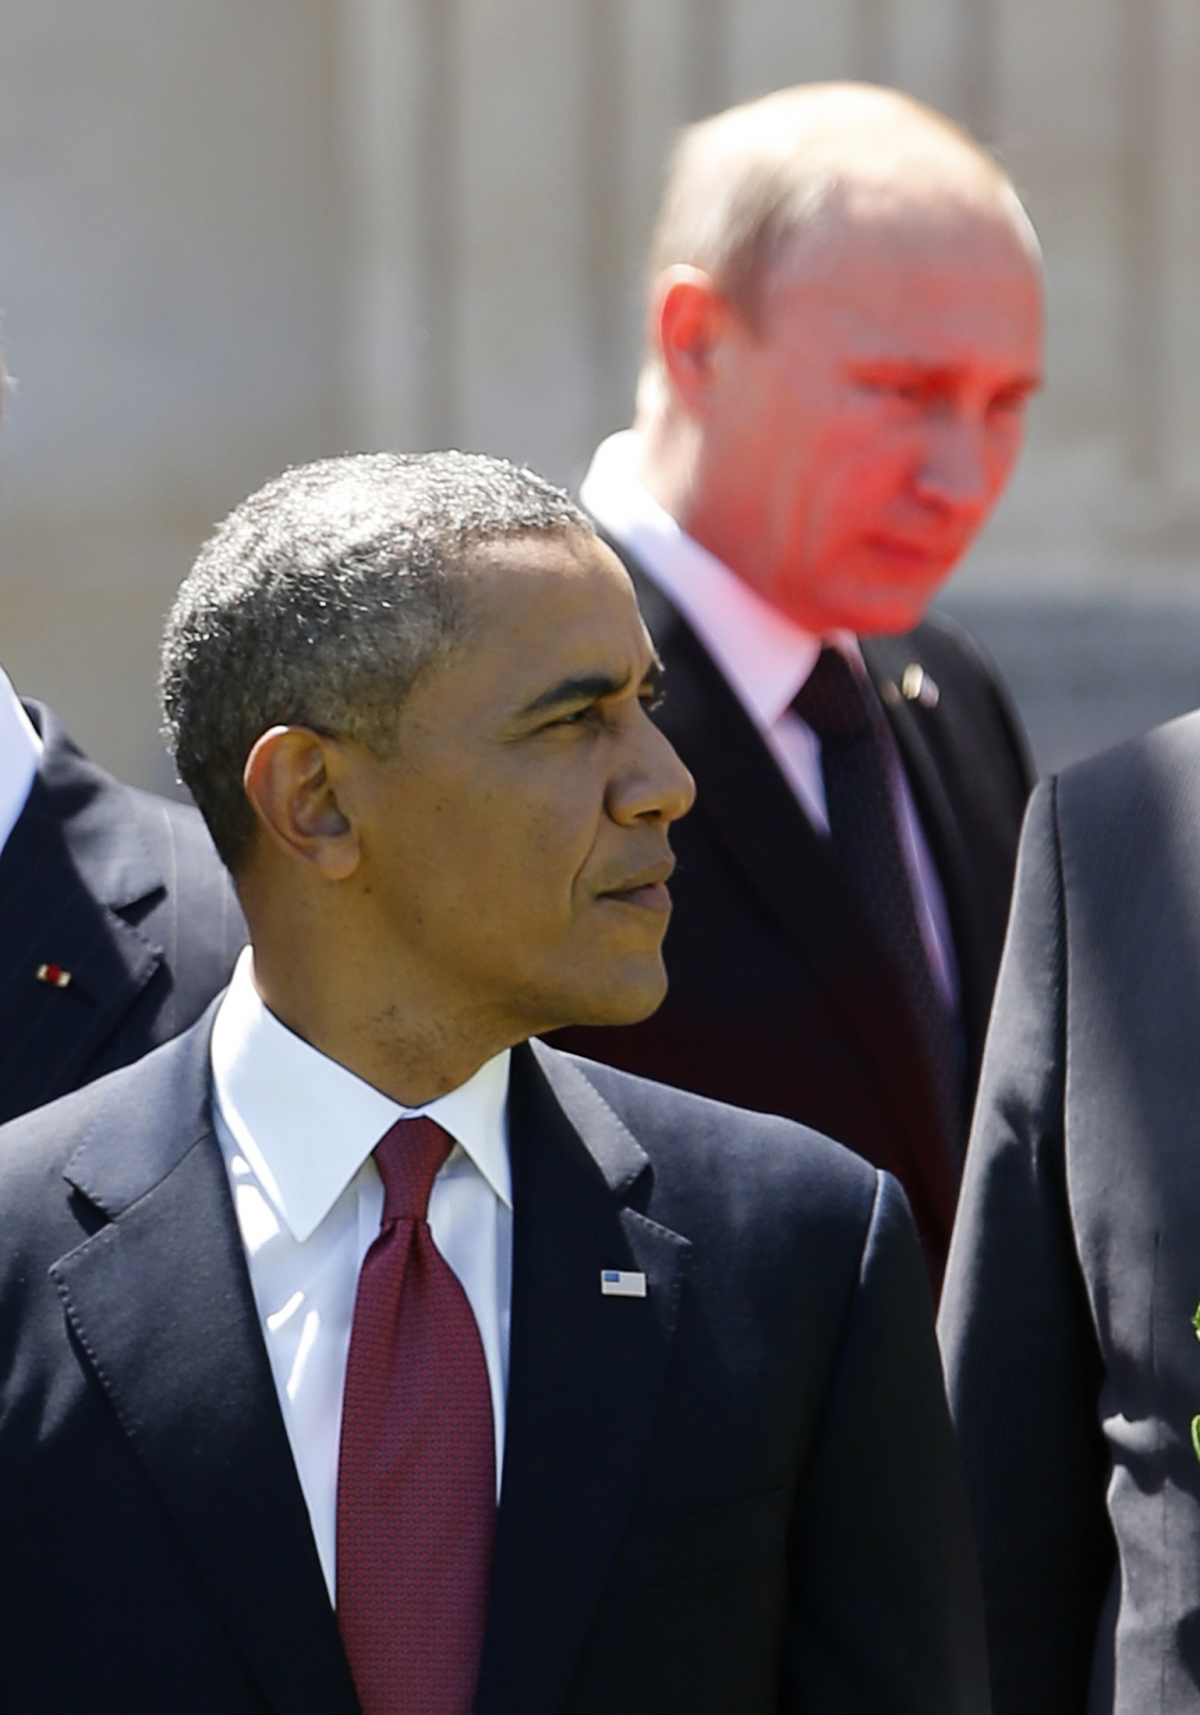 Red light reflected from the carpet illuminates Russian President Vladimir Putin as he passes U.S. President Barack Obama at a group photo for the 70th anniversary of the D-Day landings in Benouville